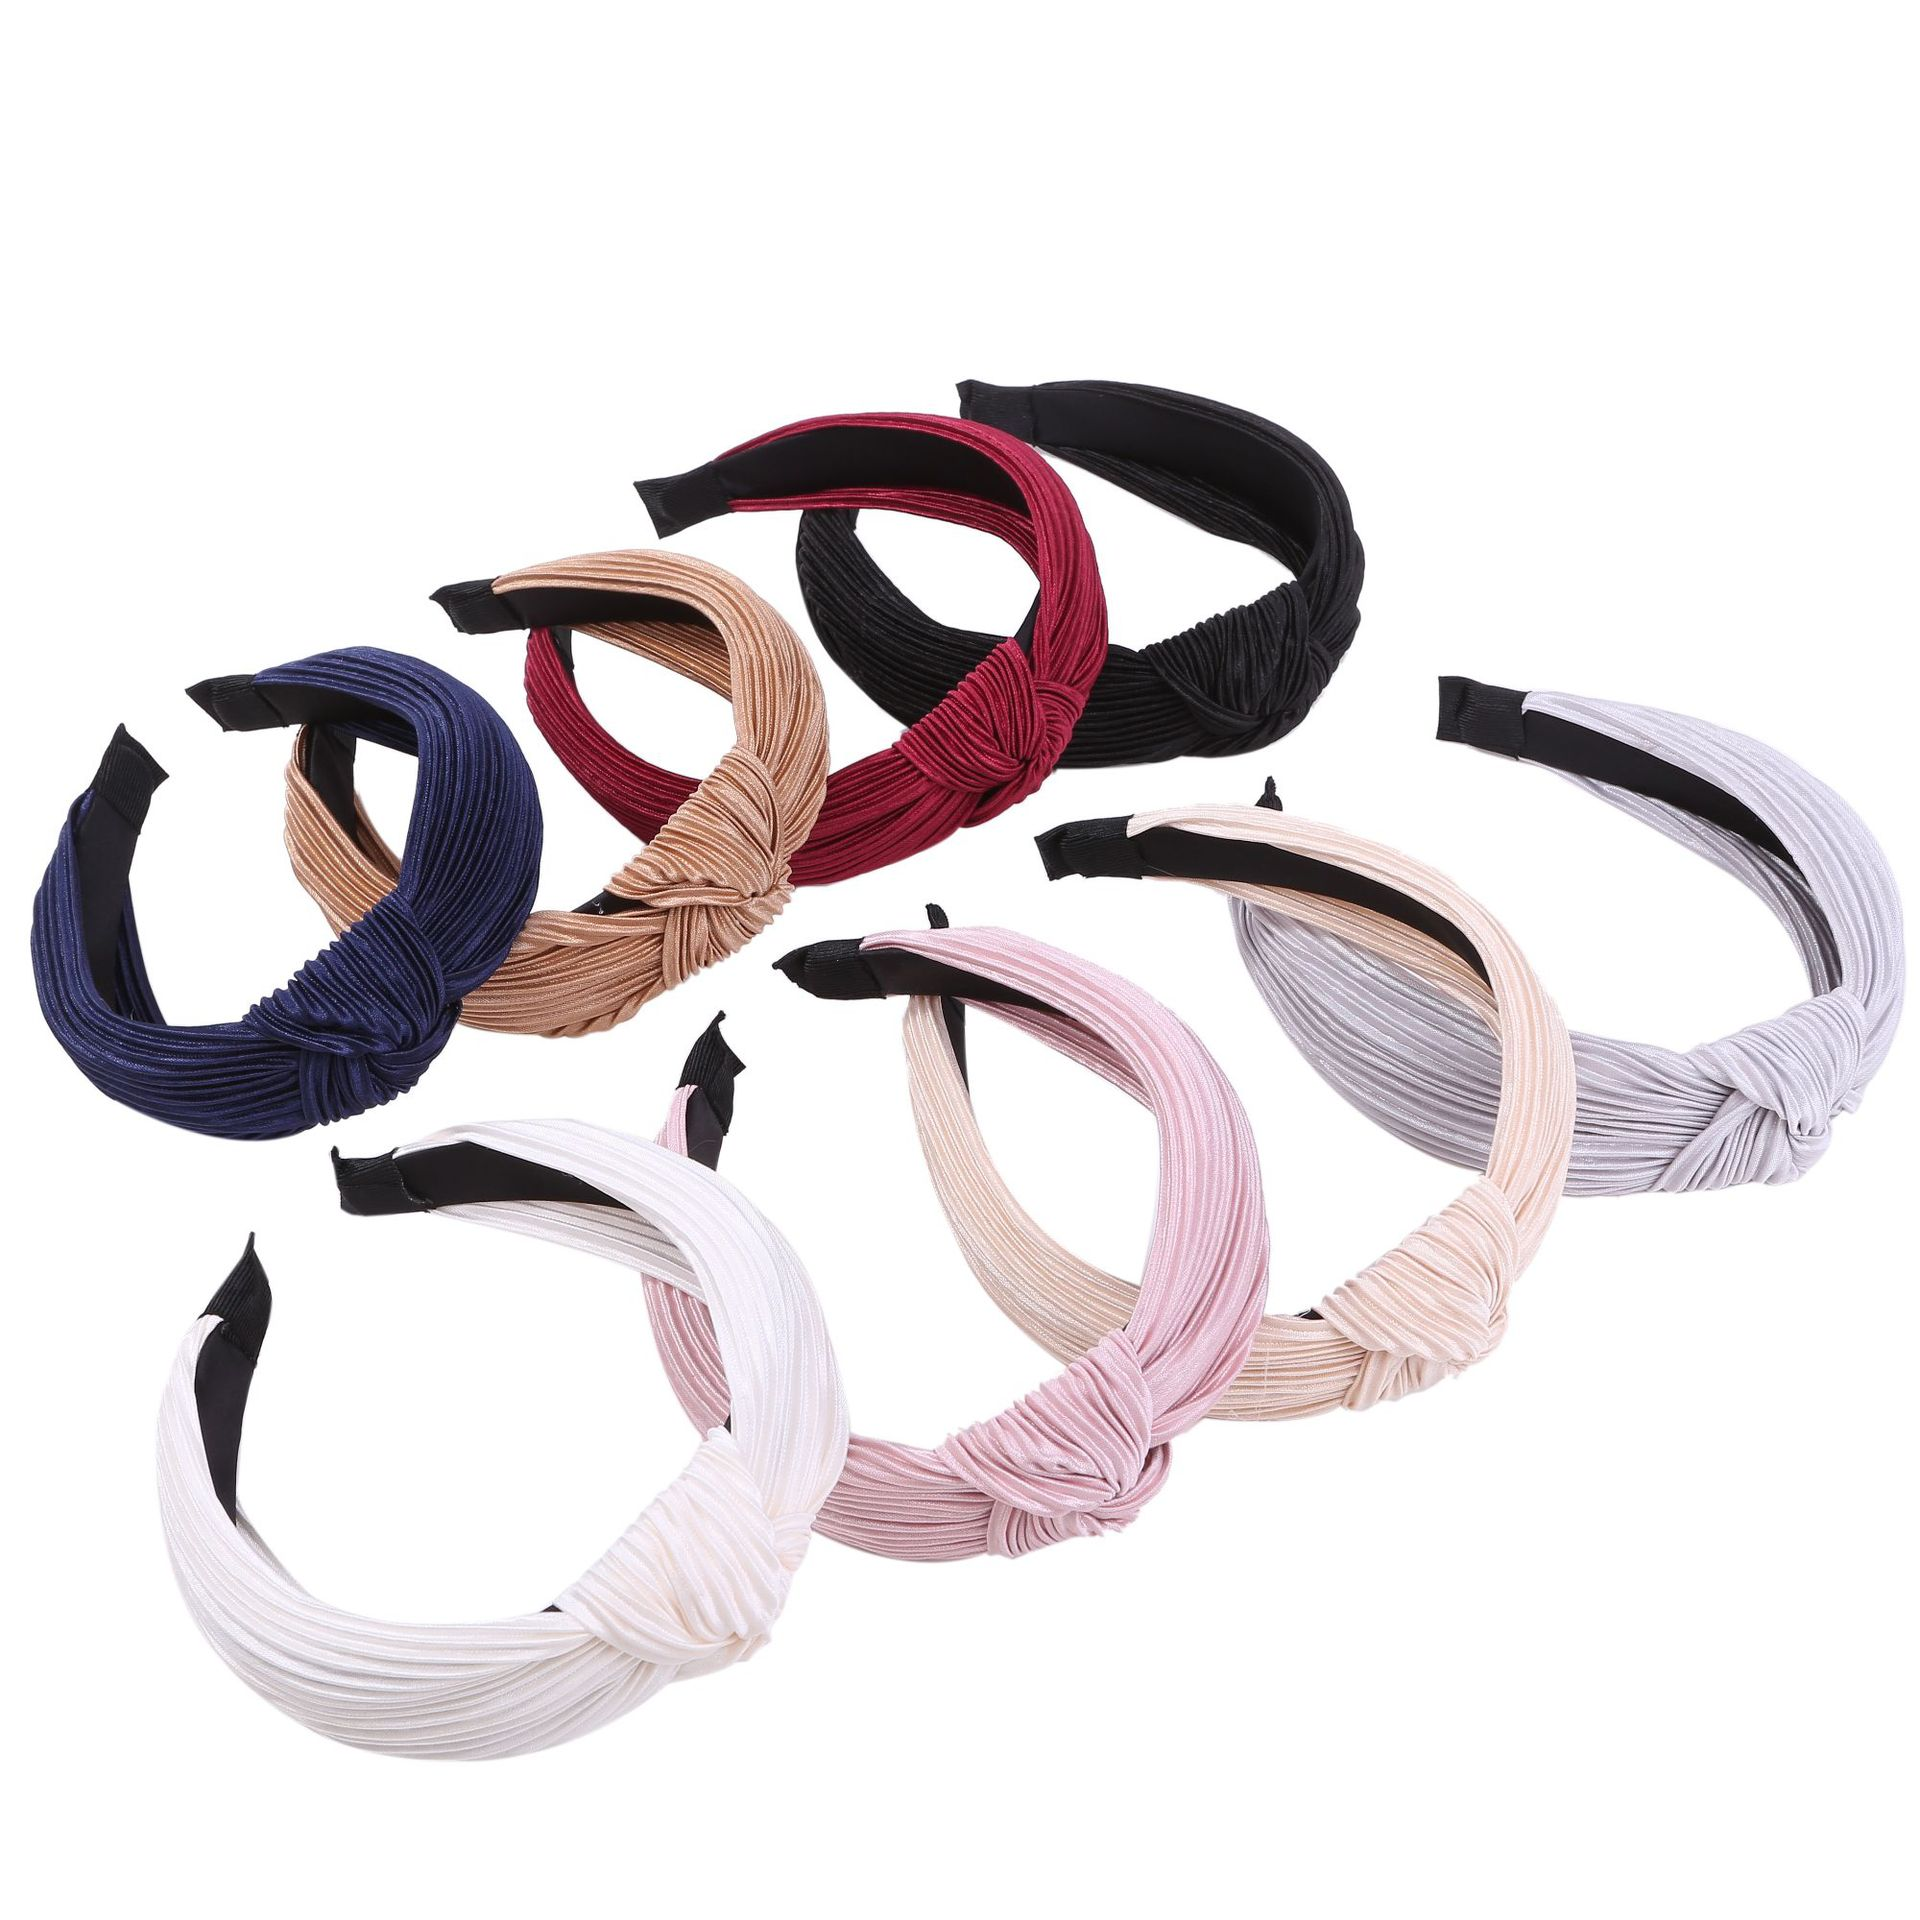 Pleated Fabric Knot Hairband Knotted  Headband Customized Hair Accessories